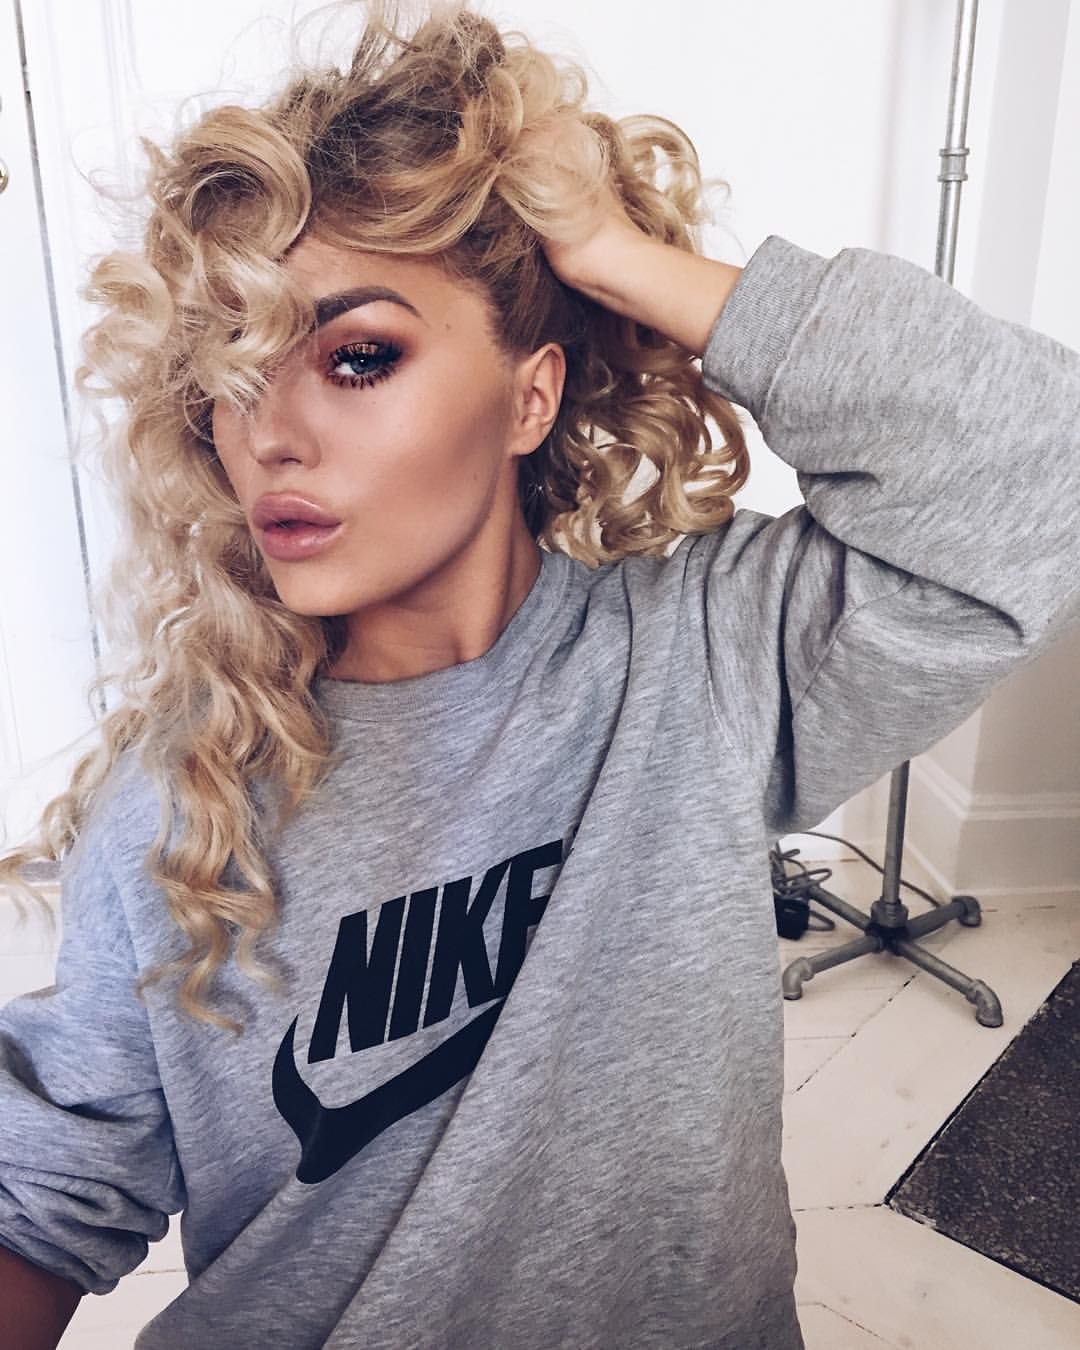 Nose piercing in 30s  Donut get it twisted  Styleinspo  Pinterest  Angelica blick and